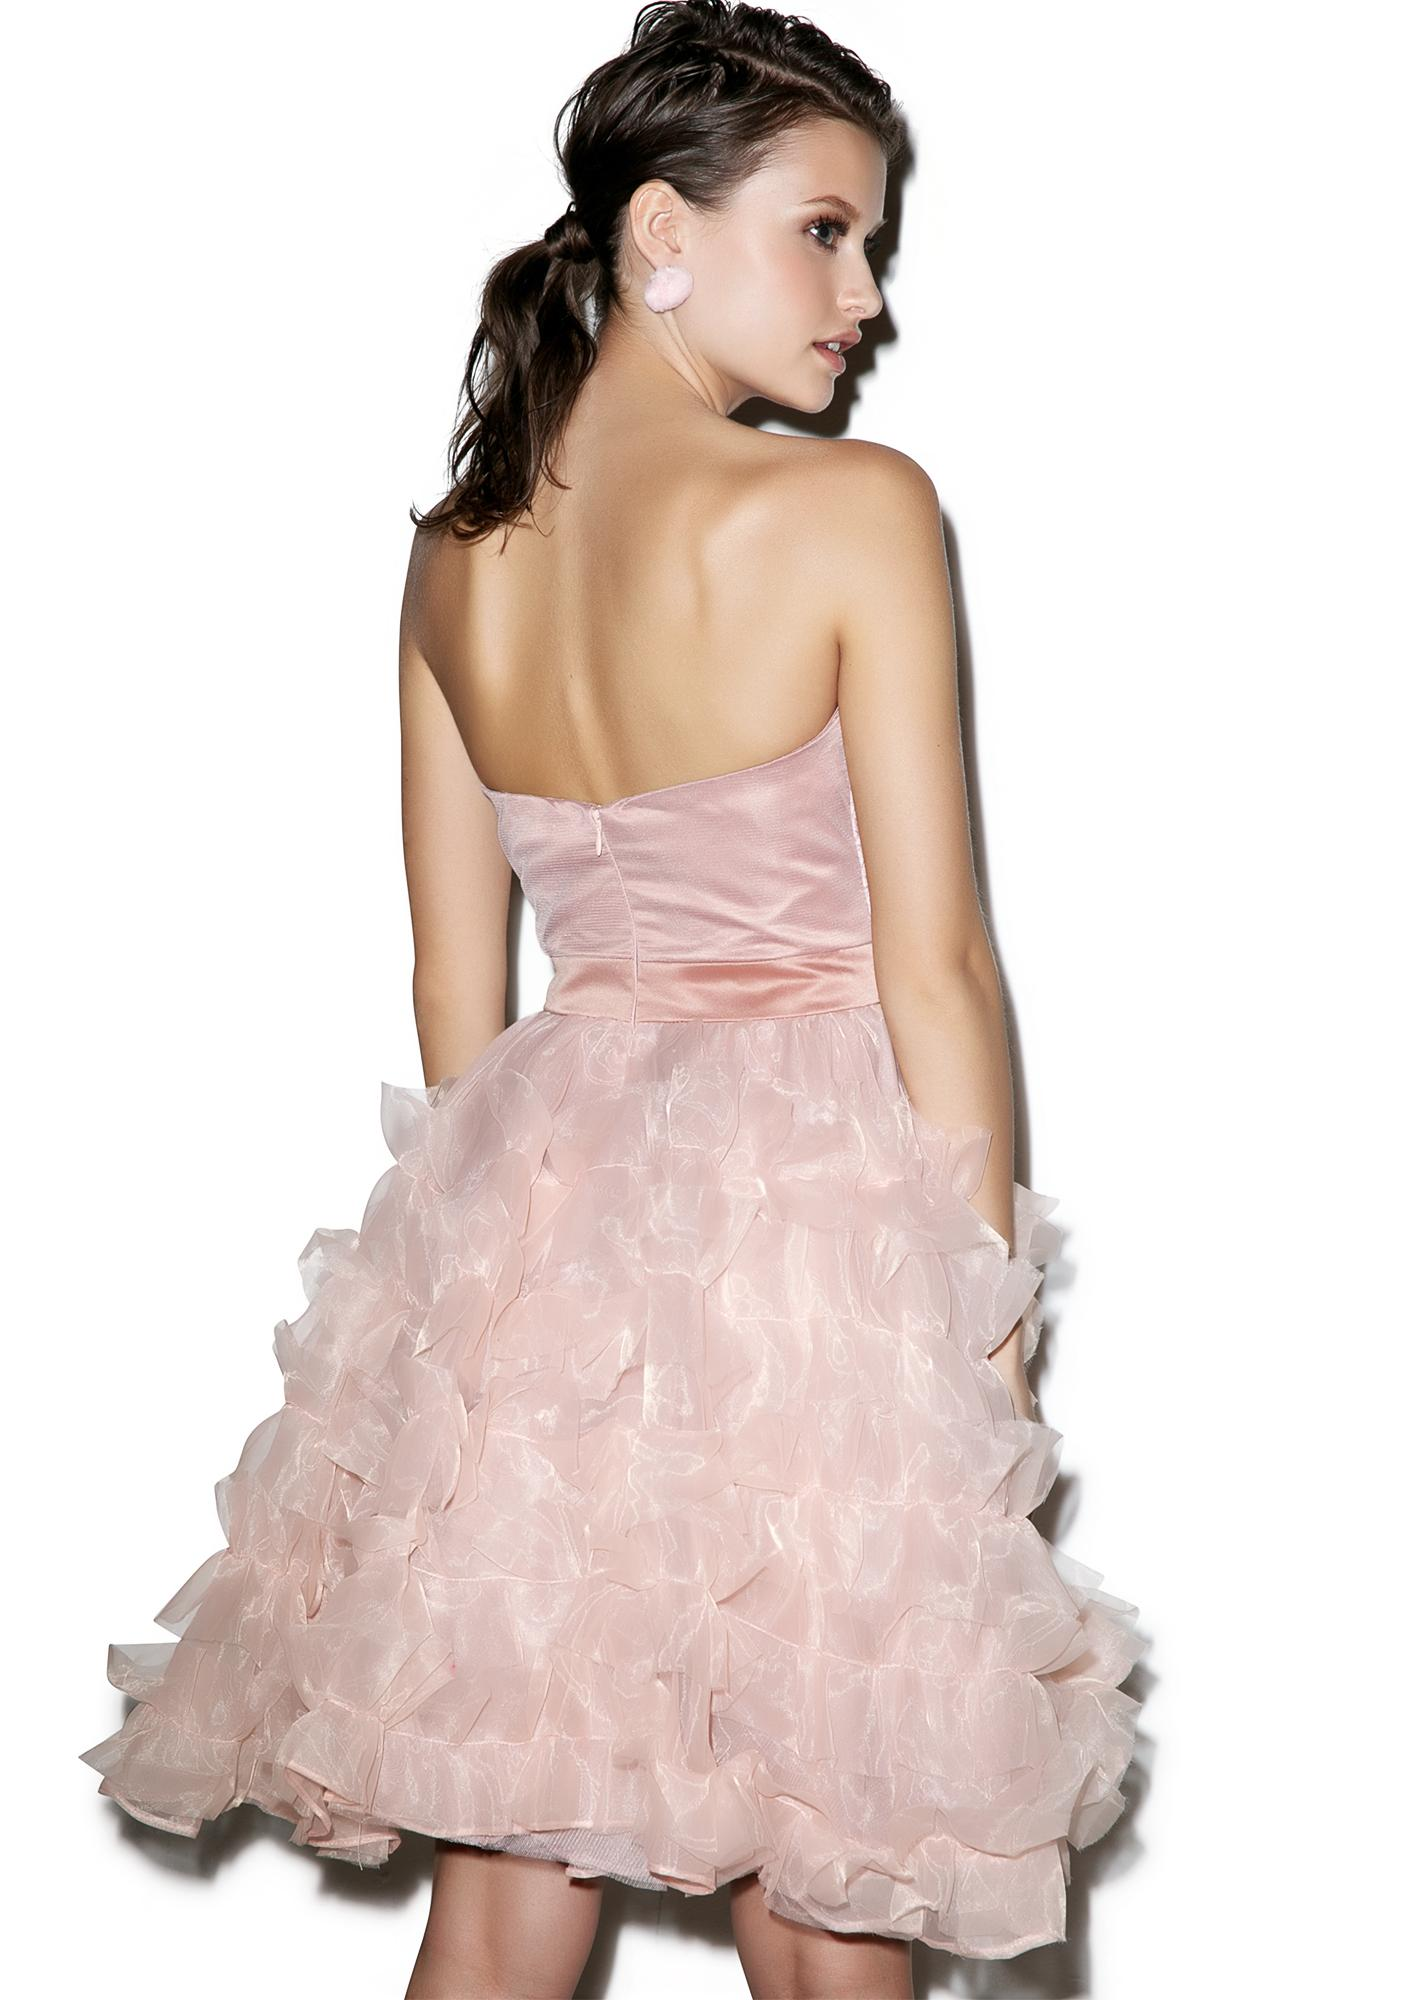 Glamorous Rose Bride Ruffled Dress